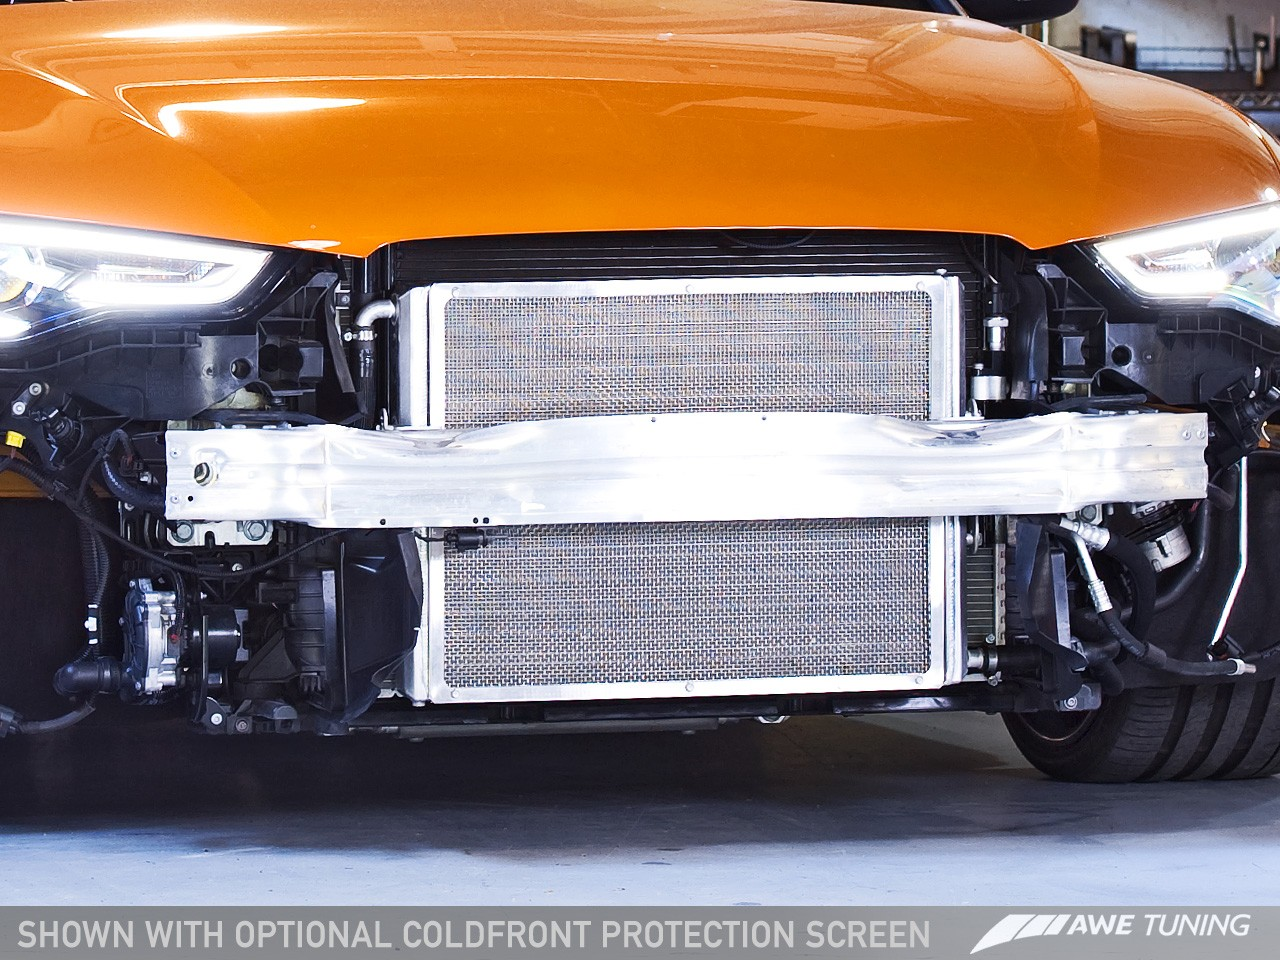 AWE Tuning ColdFront™ System